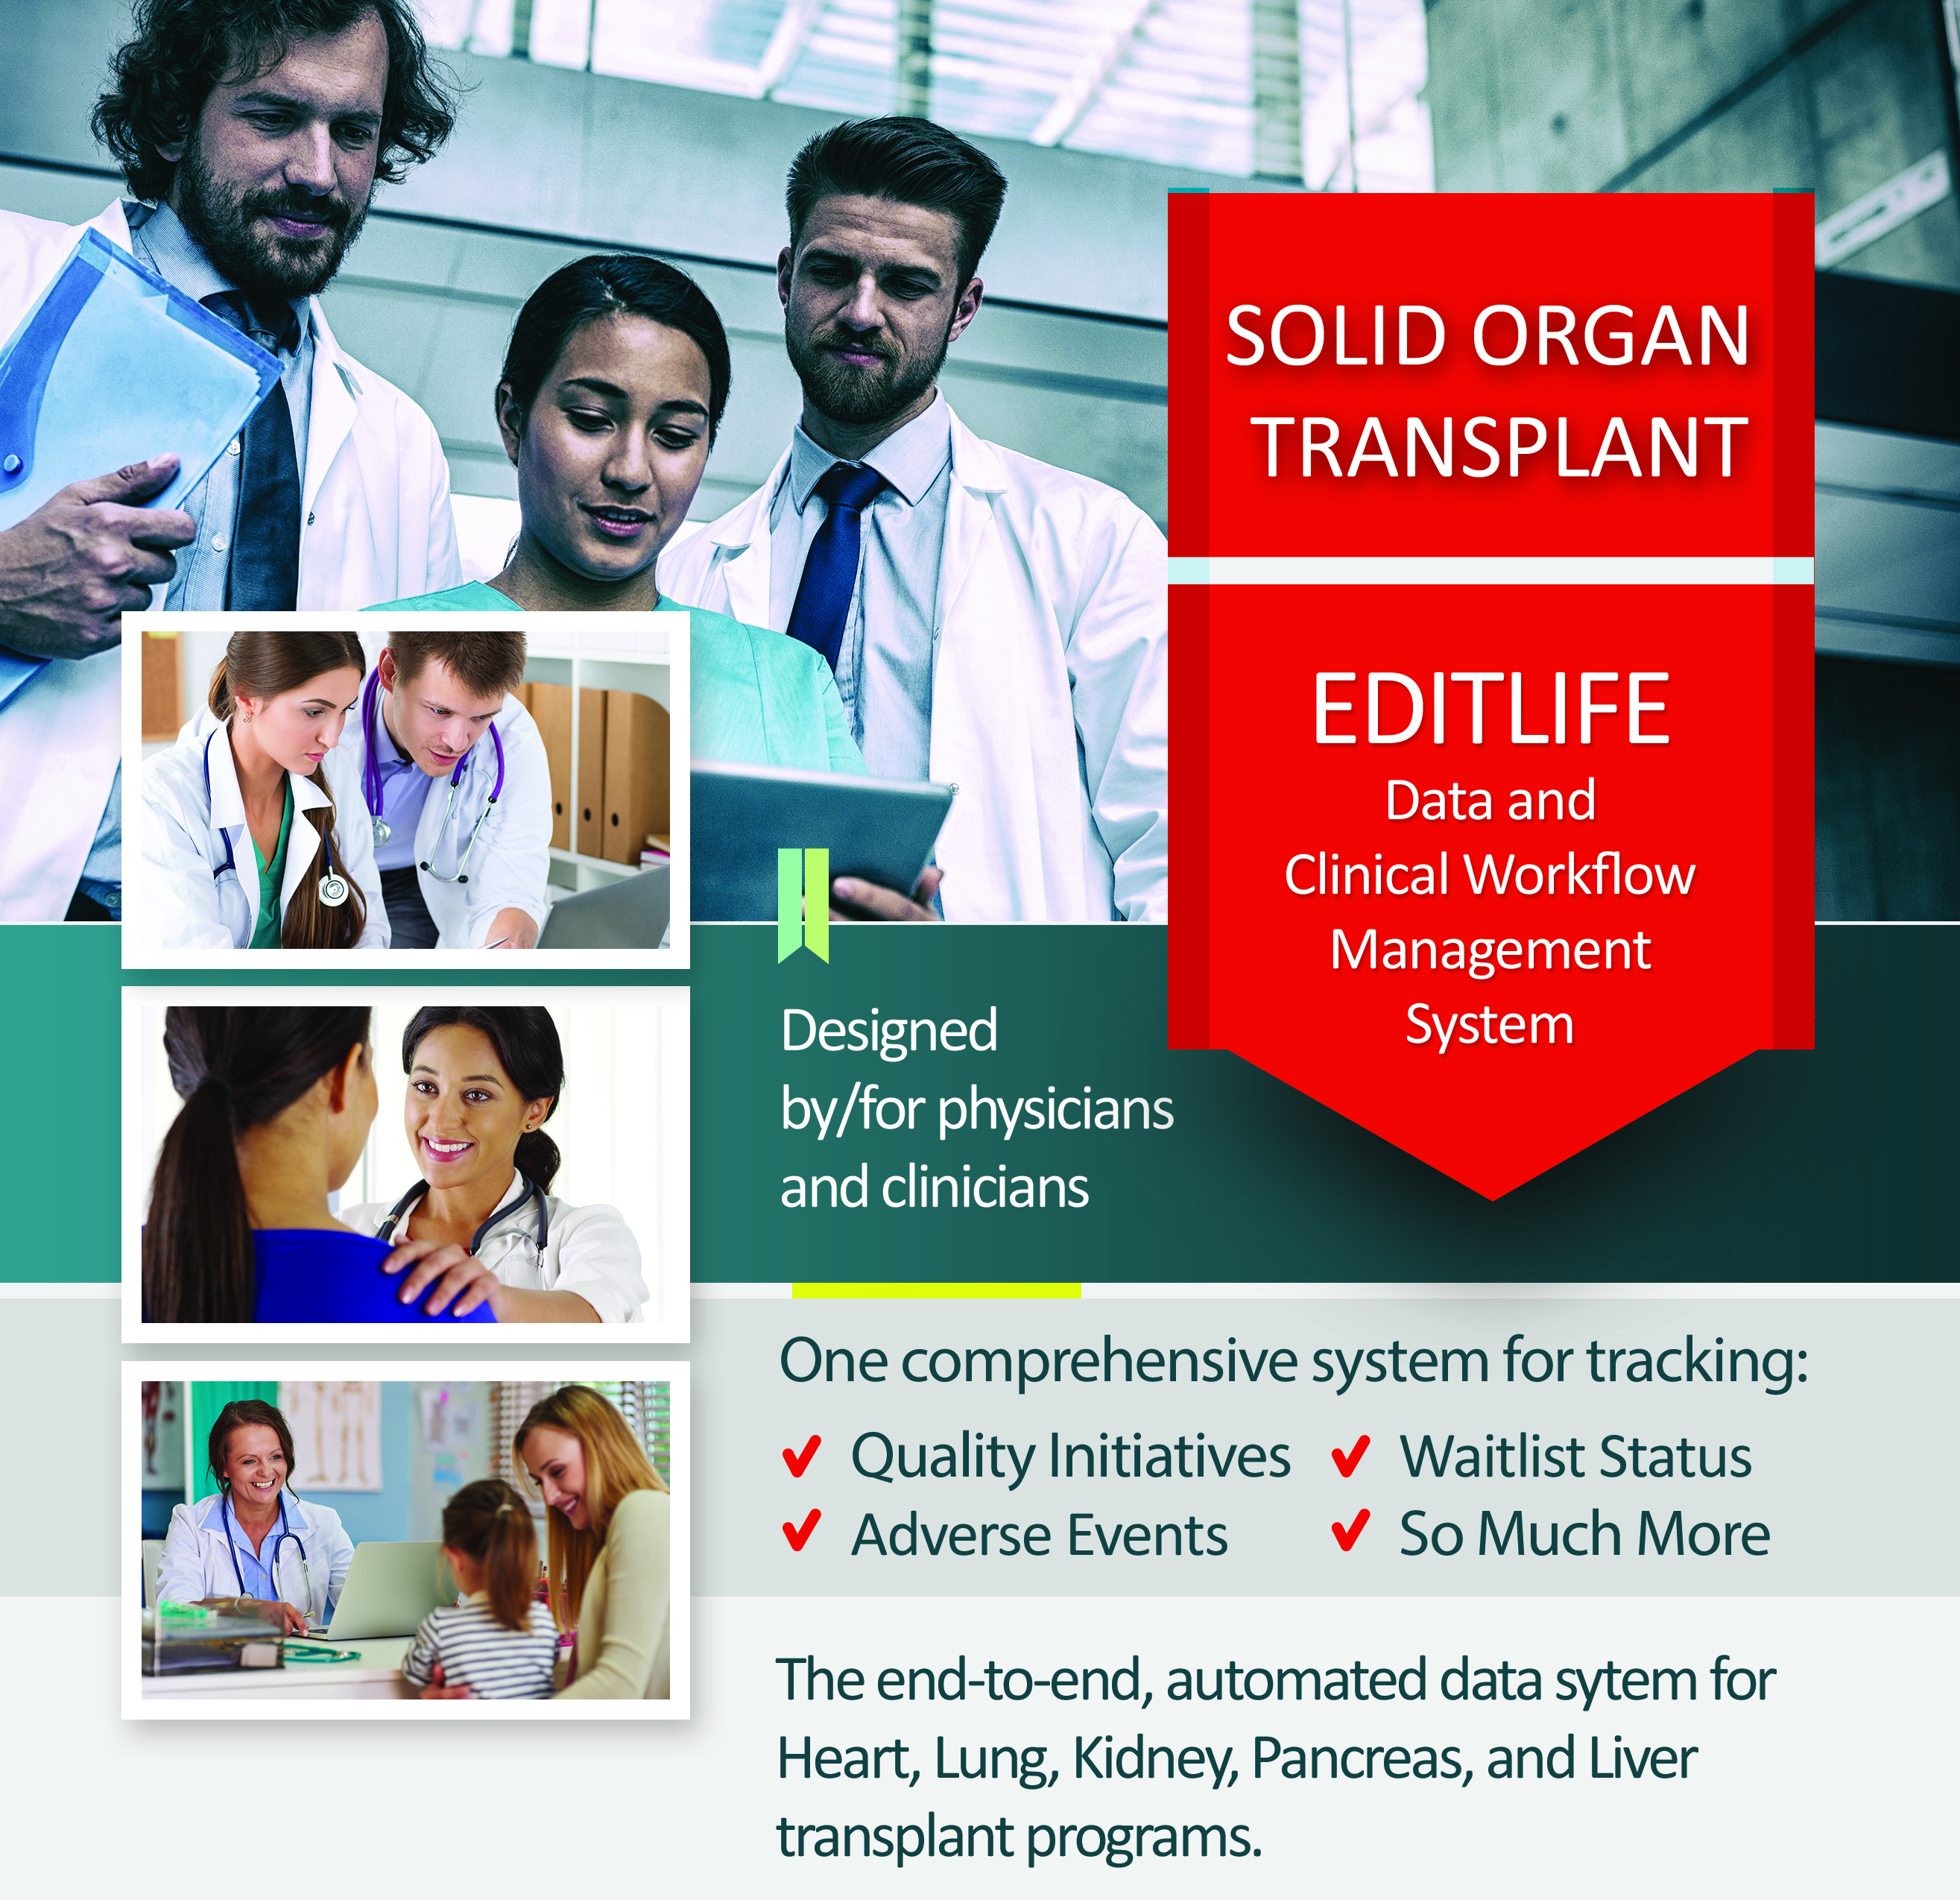 EDITLife for Solid Organ Transplant